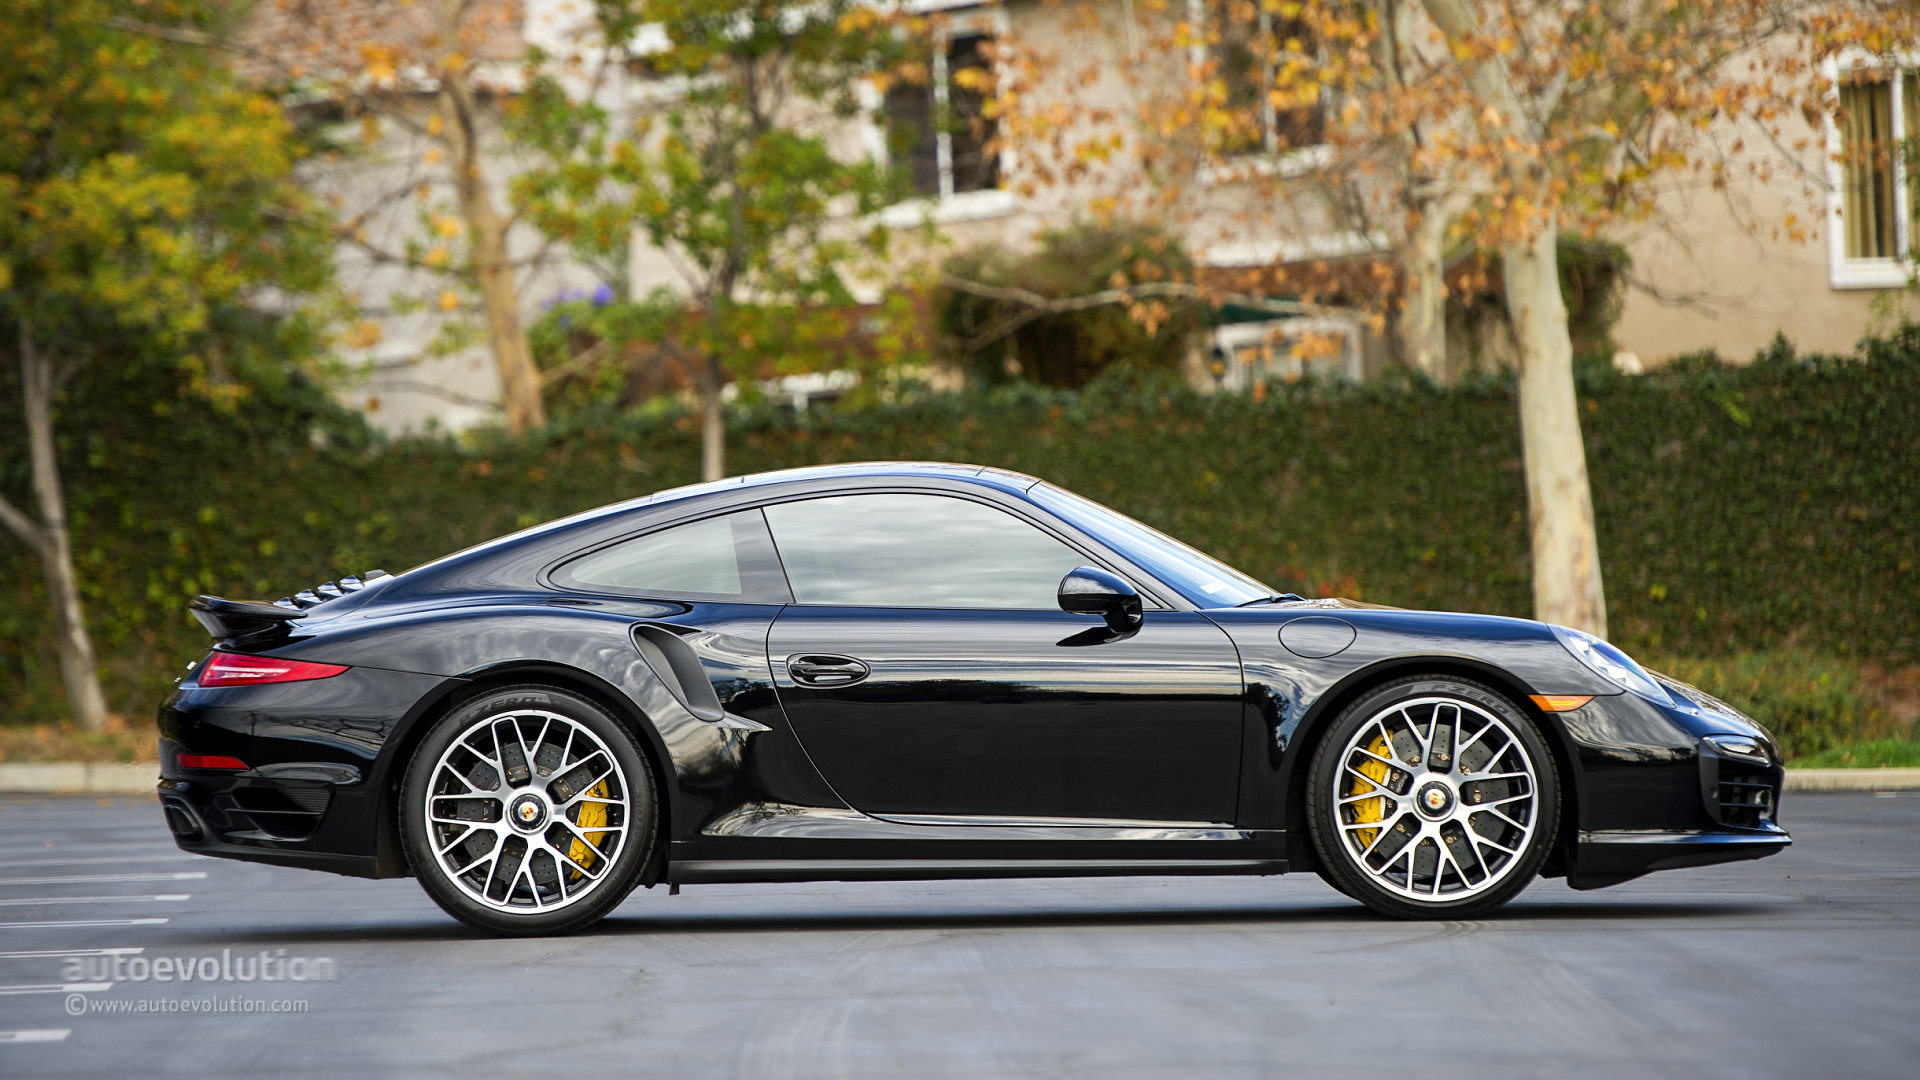 2014 porsche 911 turbo s review page 2 autoevolution. Black Bedroom Furniture Sets. Home Design Ideas